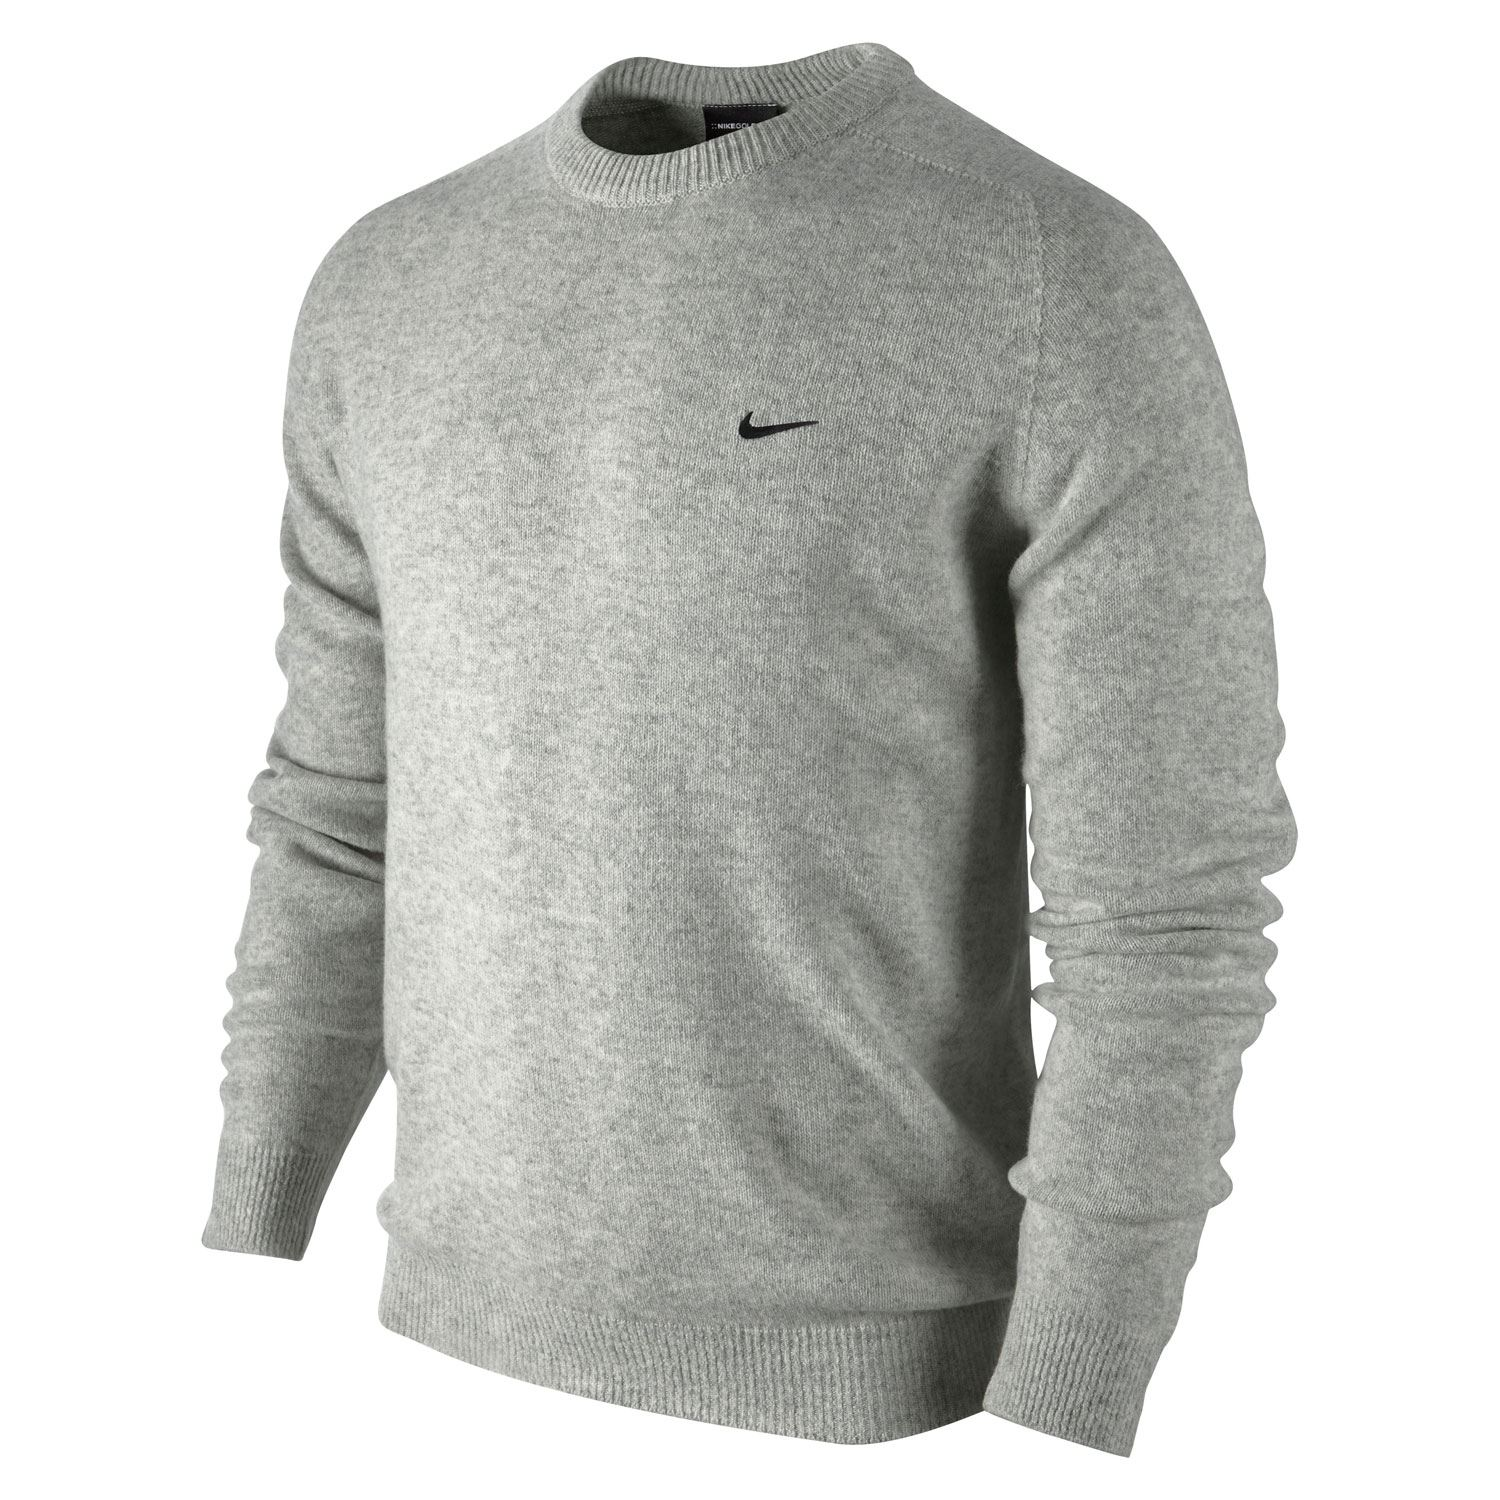 Shop Nike Hoodies & Sweatshirts at Eastbay. Browse through our selection of Nike Hoodies, available in a variety of sizes, styles, and colors. Free Shipping on select products.